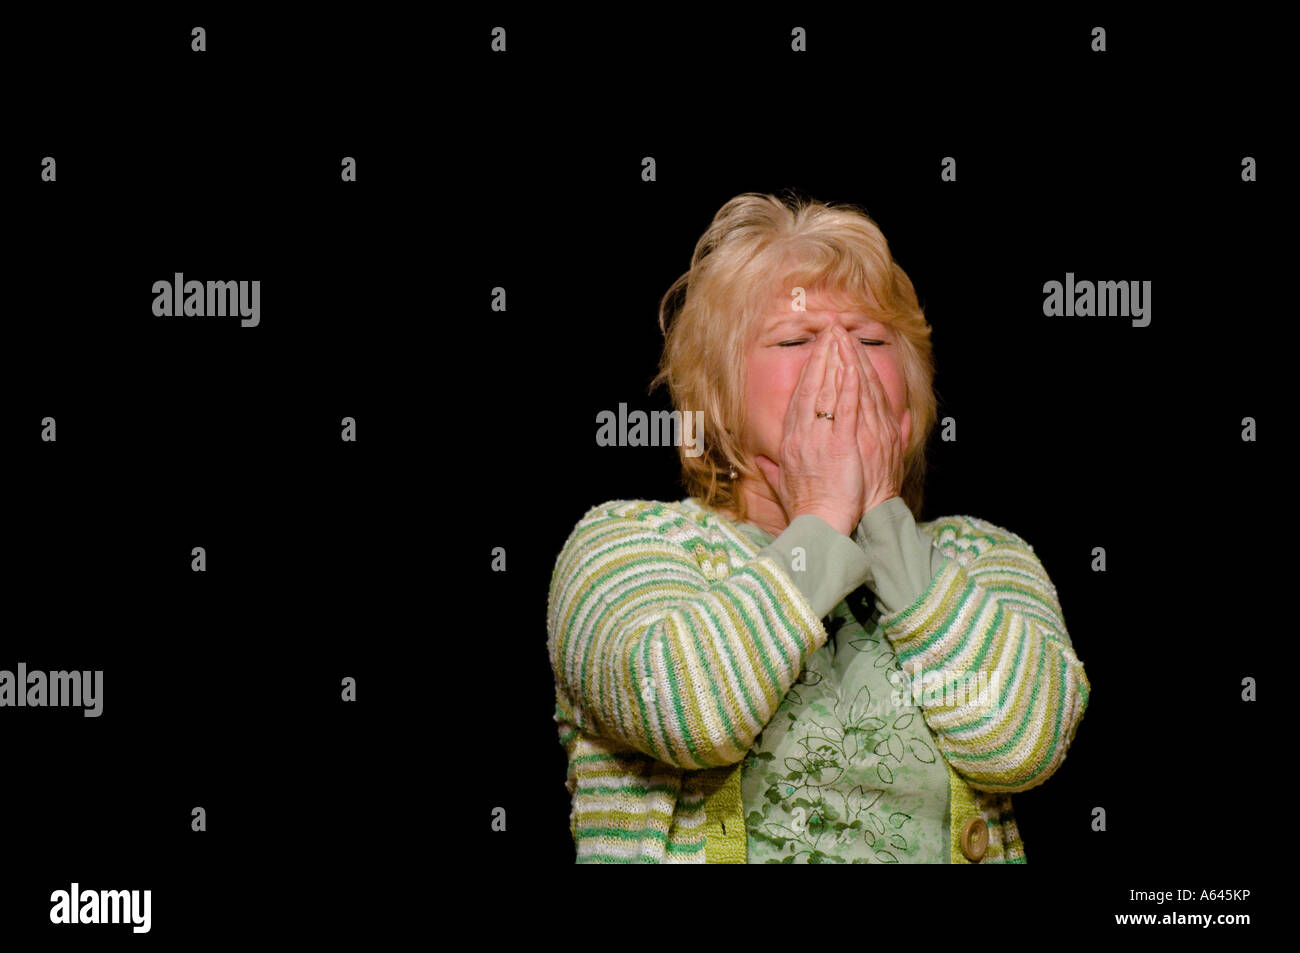 A woman upset and crying. Picture by Jim Holden. - Stock Image